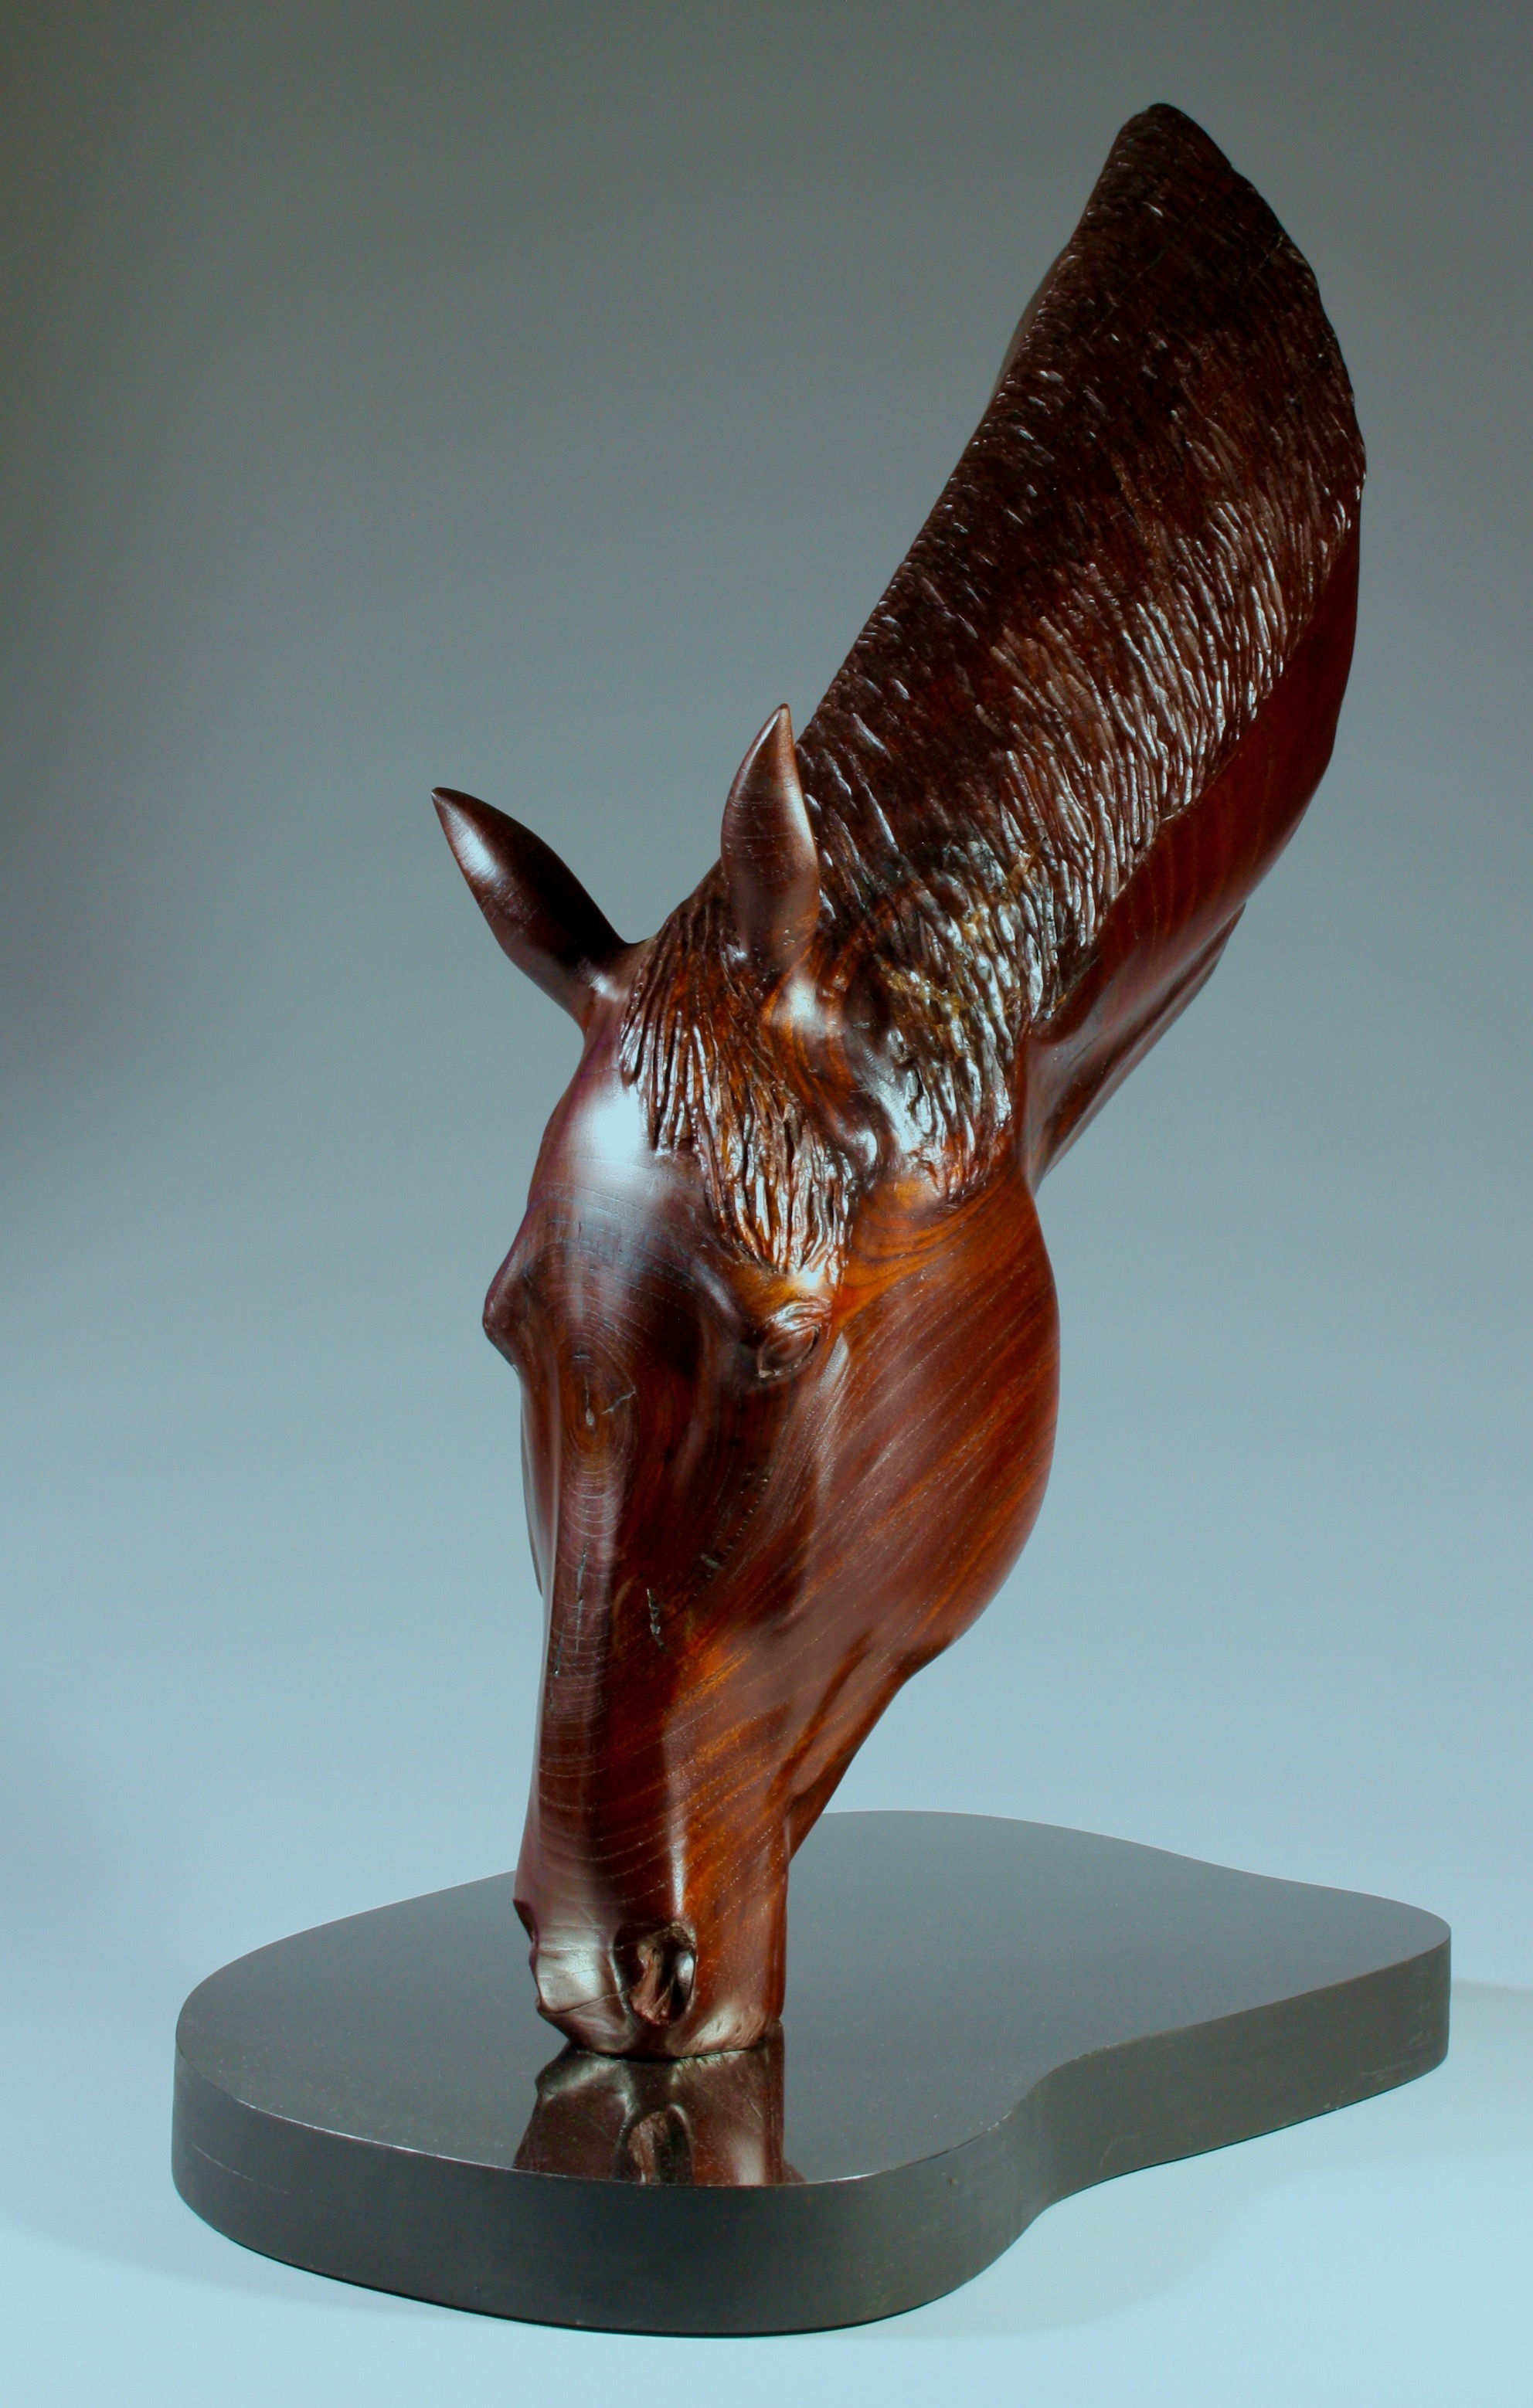 'Quenching his Thirst'    Wood:    Australian red cedar   Dimensions:  64x 30x45cm   Artist Statement:    The majesty of the horse, its power and intelligence are all reflected in its simple action of quenching his thirst.